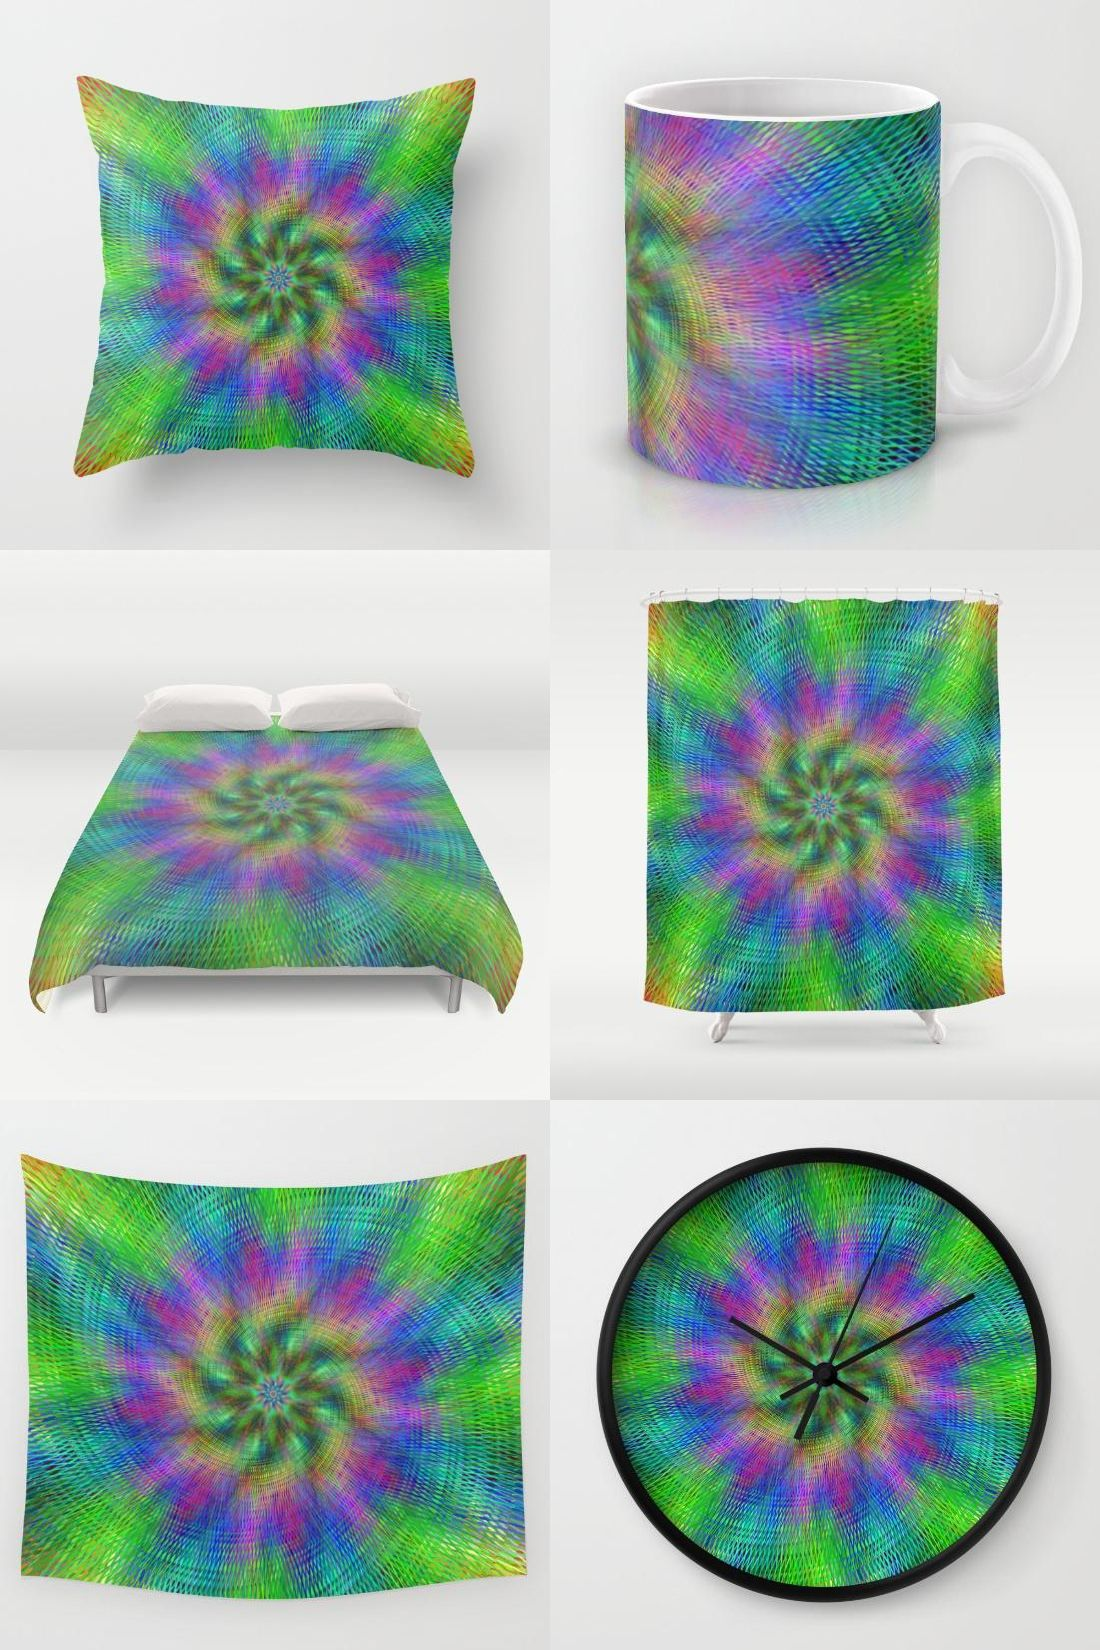 Throw pillows cards mugs shower curtains - Multicolor Abstract Home Decor Gifts Throw Pillow Mug Duvet Cover Shower Curtain